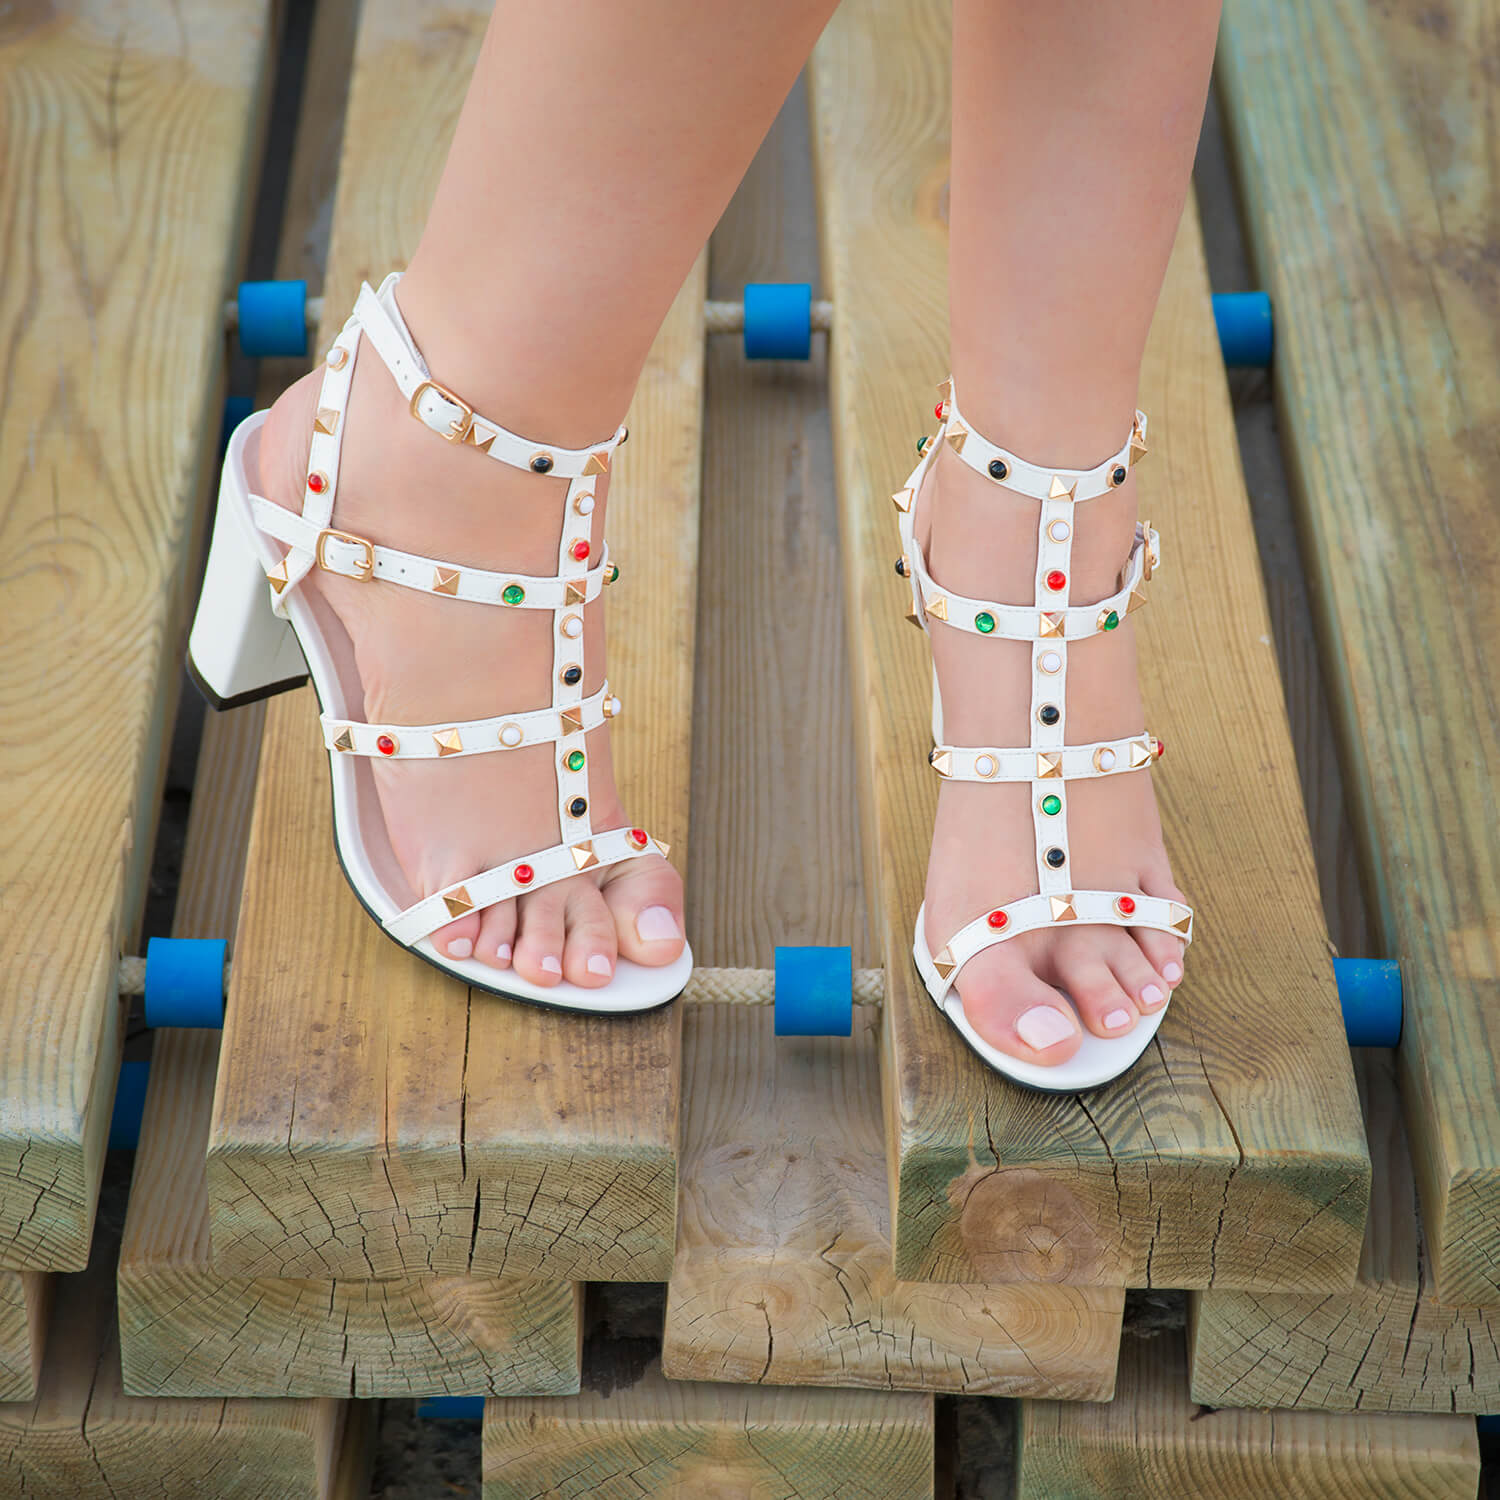 Sandalias en soft de color blanco con remaches.